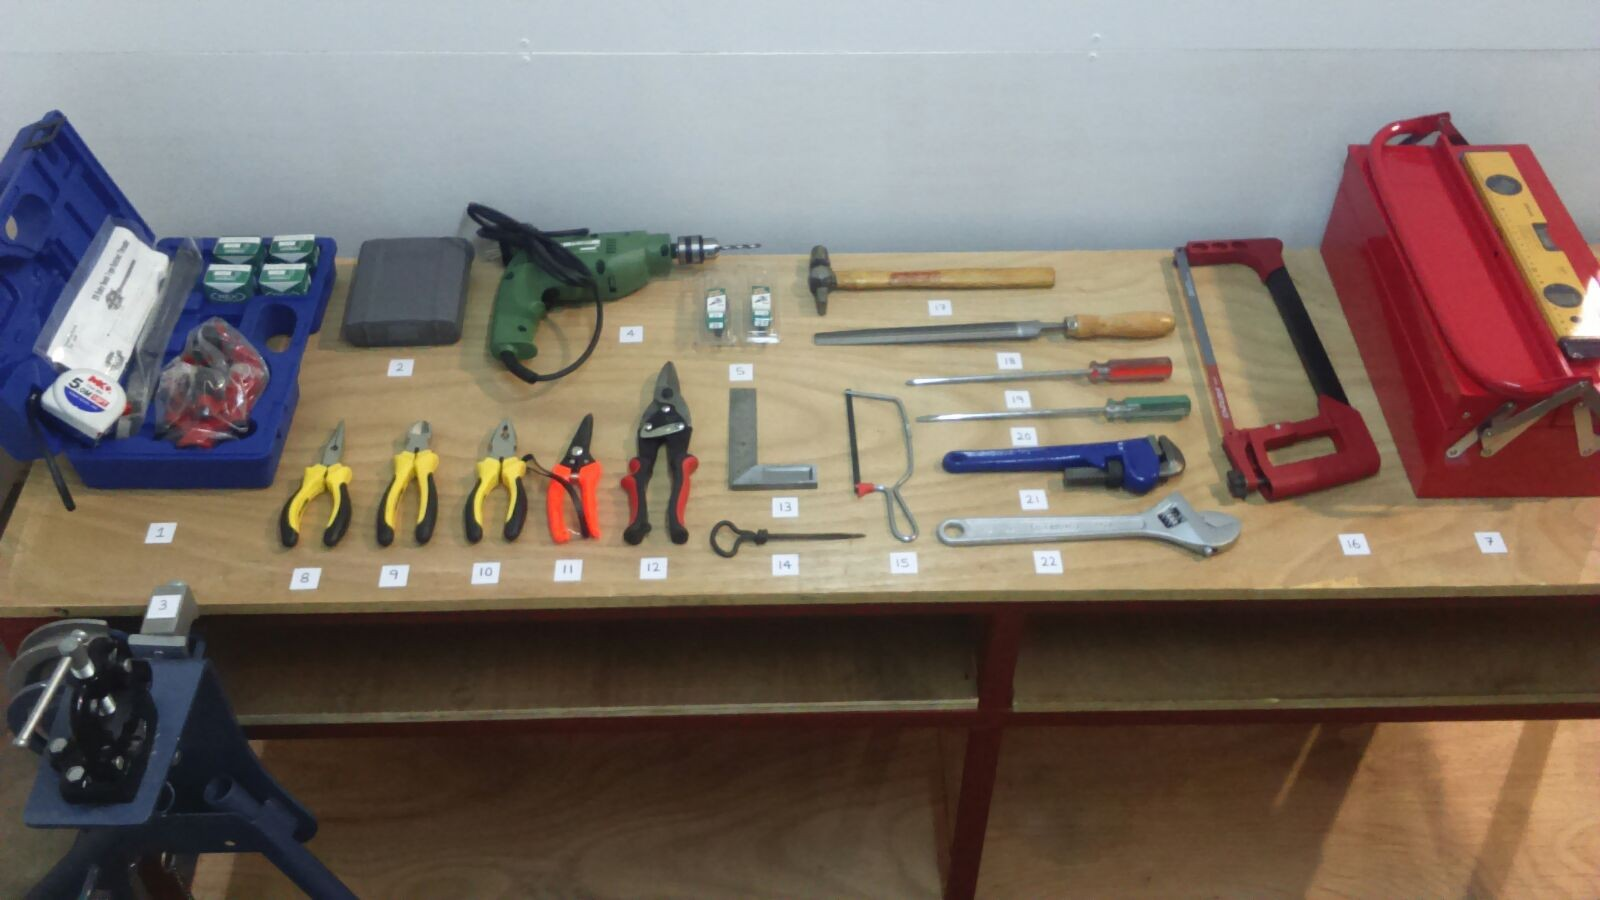 Electrical Wiring Installation Tools For Practical Lesson And Test